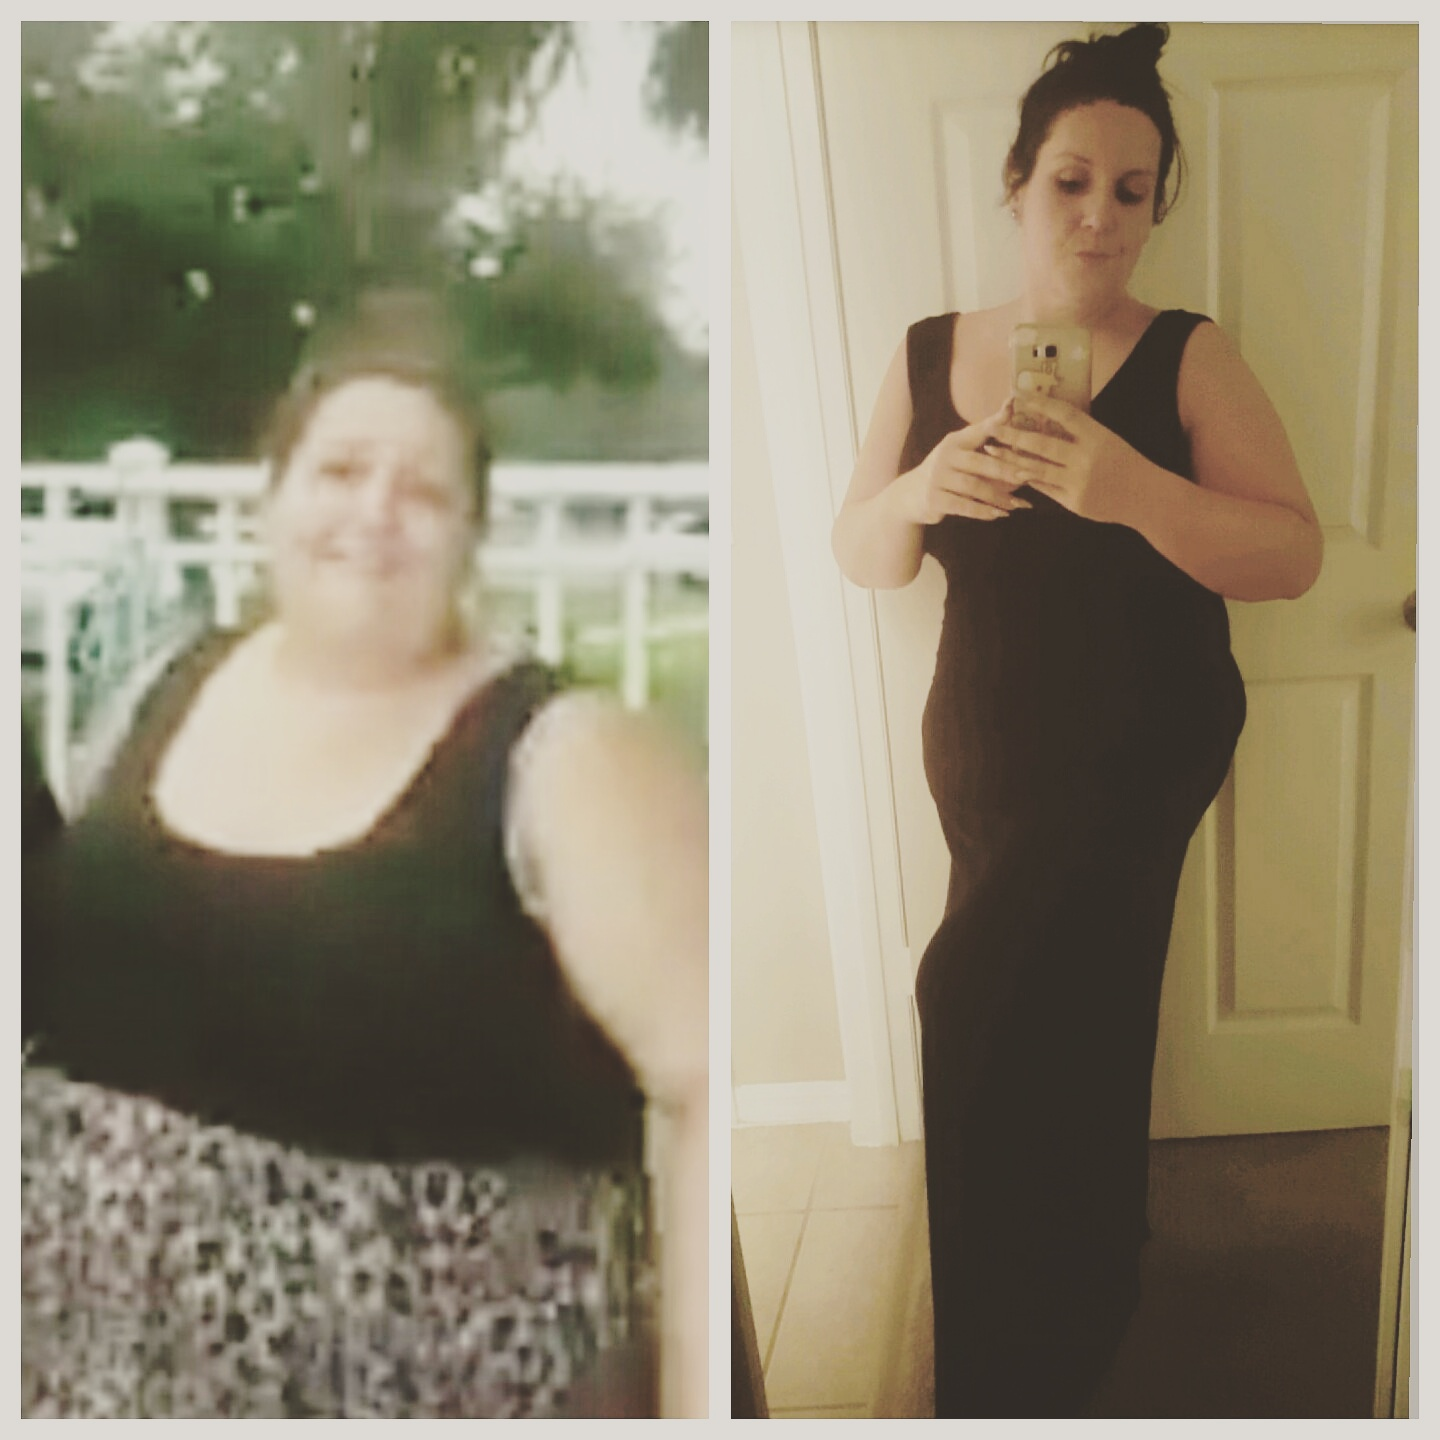 Read her success story! Before and after fitness success motivation from women who hit their weight loss goals and got THAT BODY with training and meal prep. Learn their workout tips get inspiration! | TheWeighWeWere.com